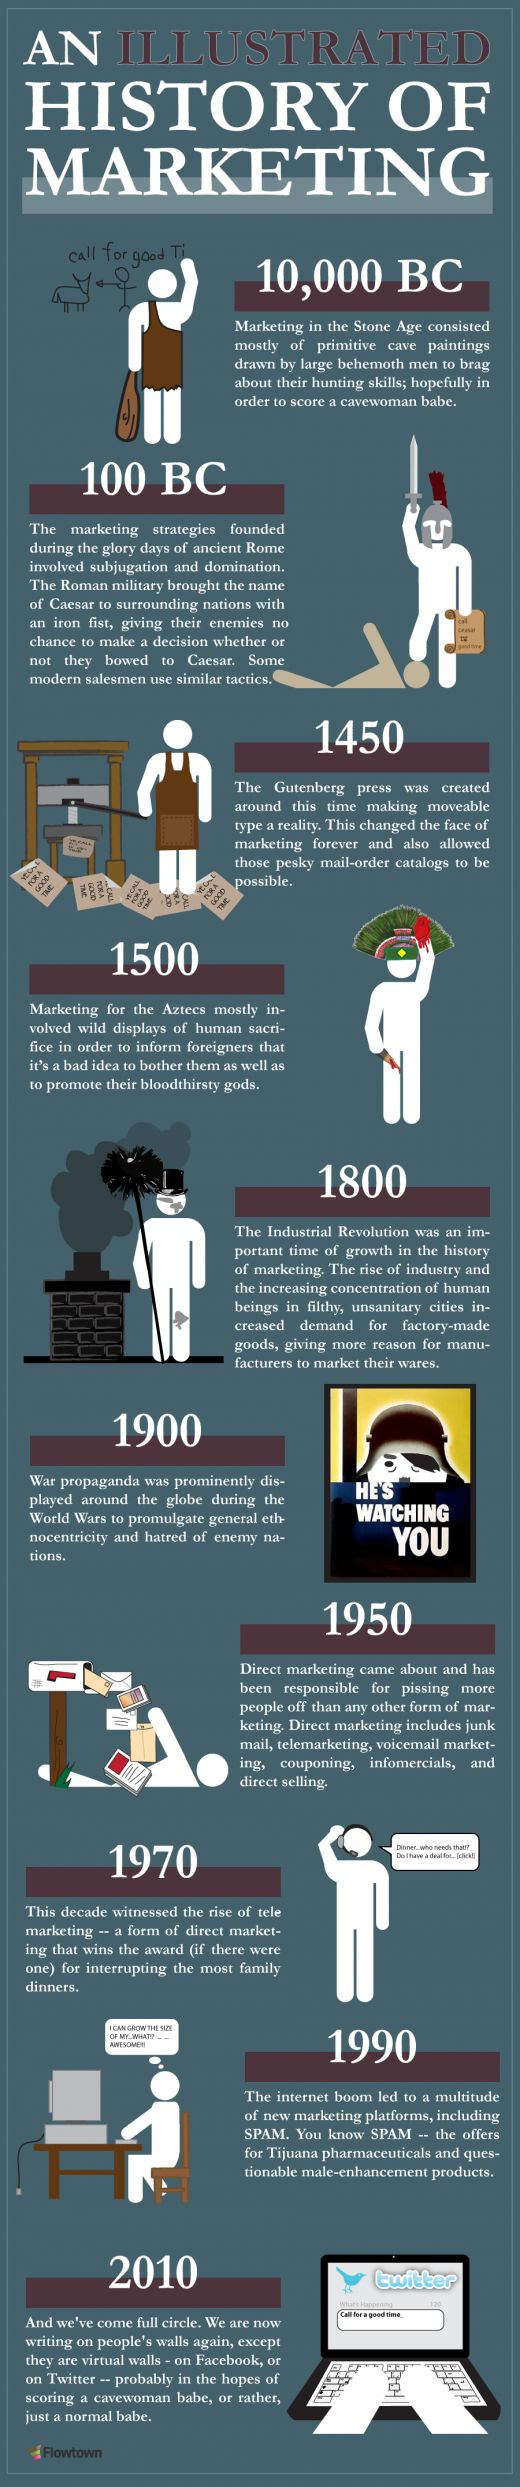 history of marketingSocial Marketing, Internet Marketing, Marketing History, Social Media, Business Smart, Art Design, Interesting Infographic, Socialmedia, Marketing Infographic